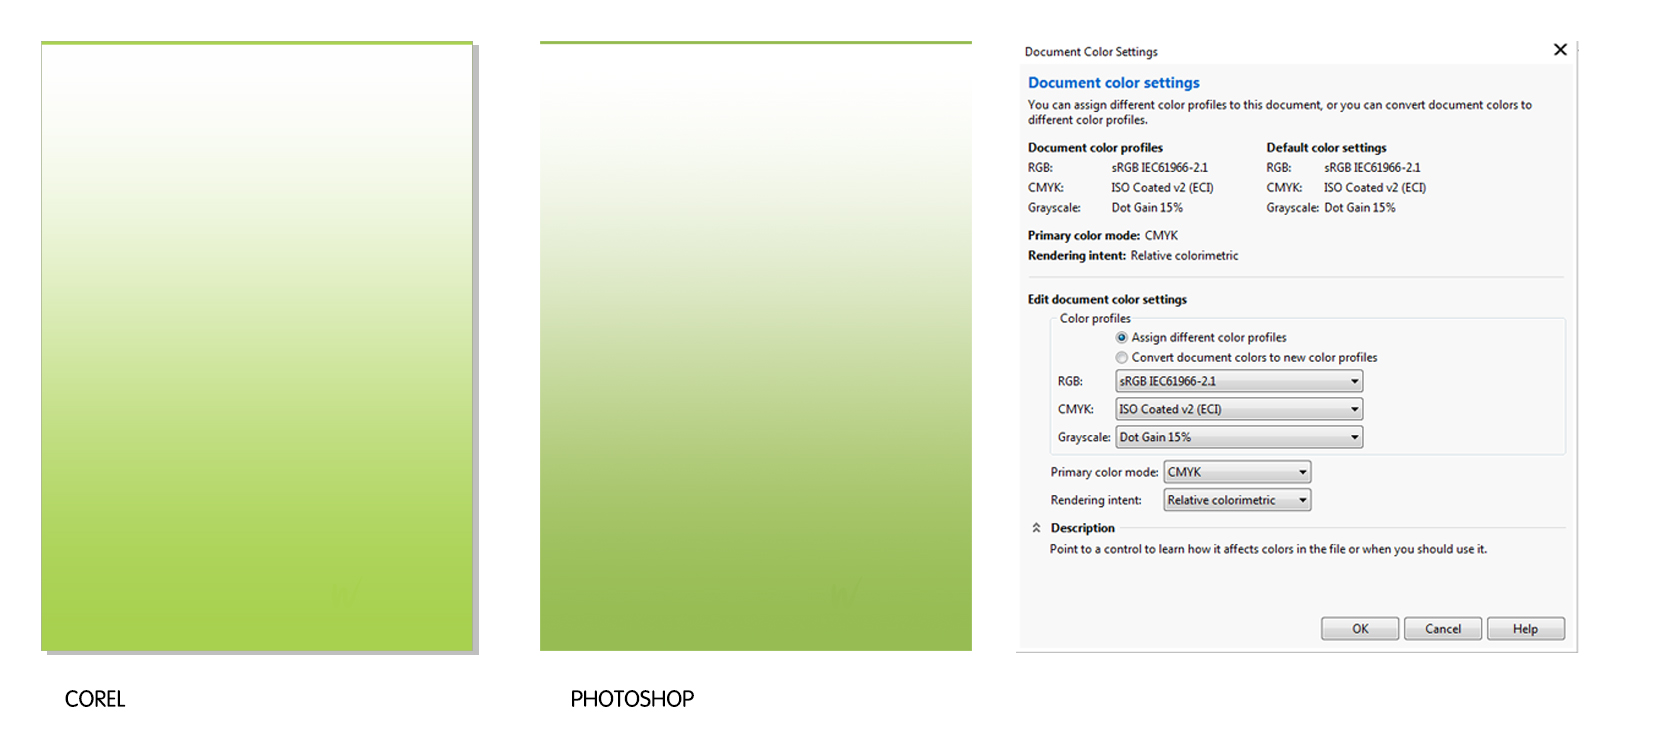 Line color in coreldraw - Line Color In Coreldraw Ps Im Posting This Image To Show The Difference Along With